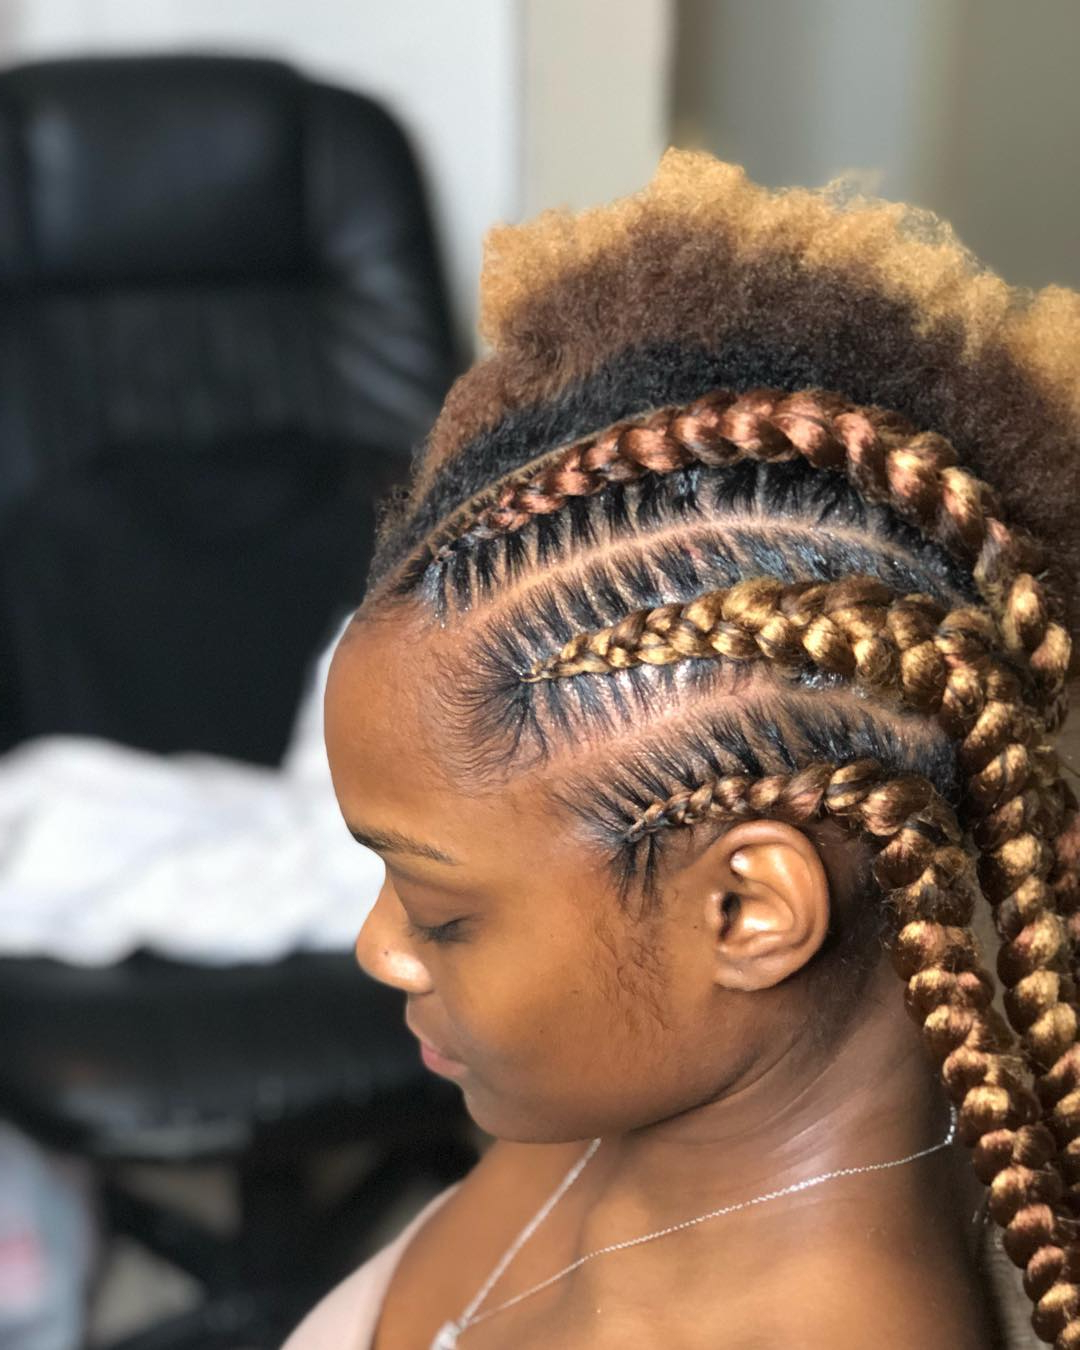 94 Artistic Ghana Braids To Try This Season – Prochronism With Regard To Favorite Medium Sized Braids Hairstyles (View 6 of 20)